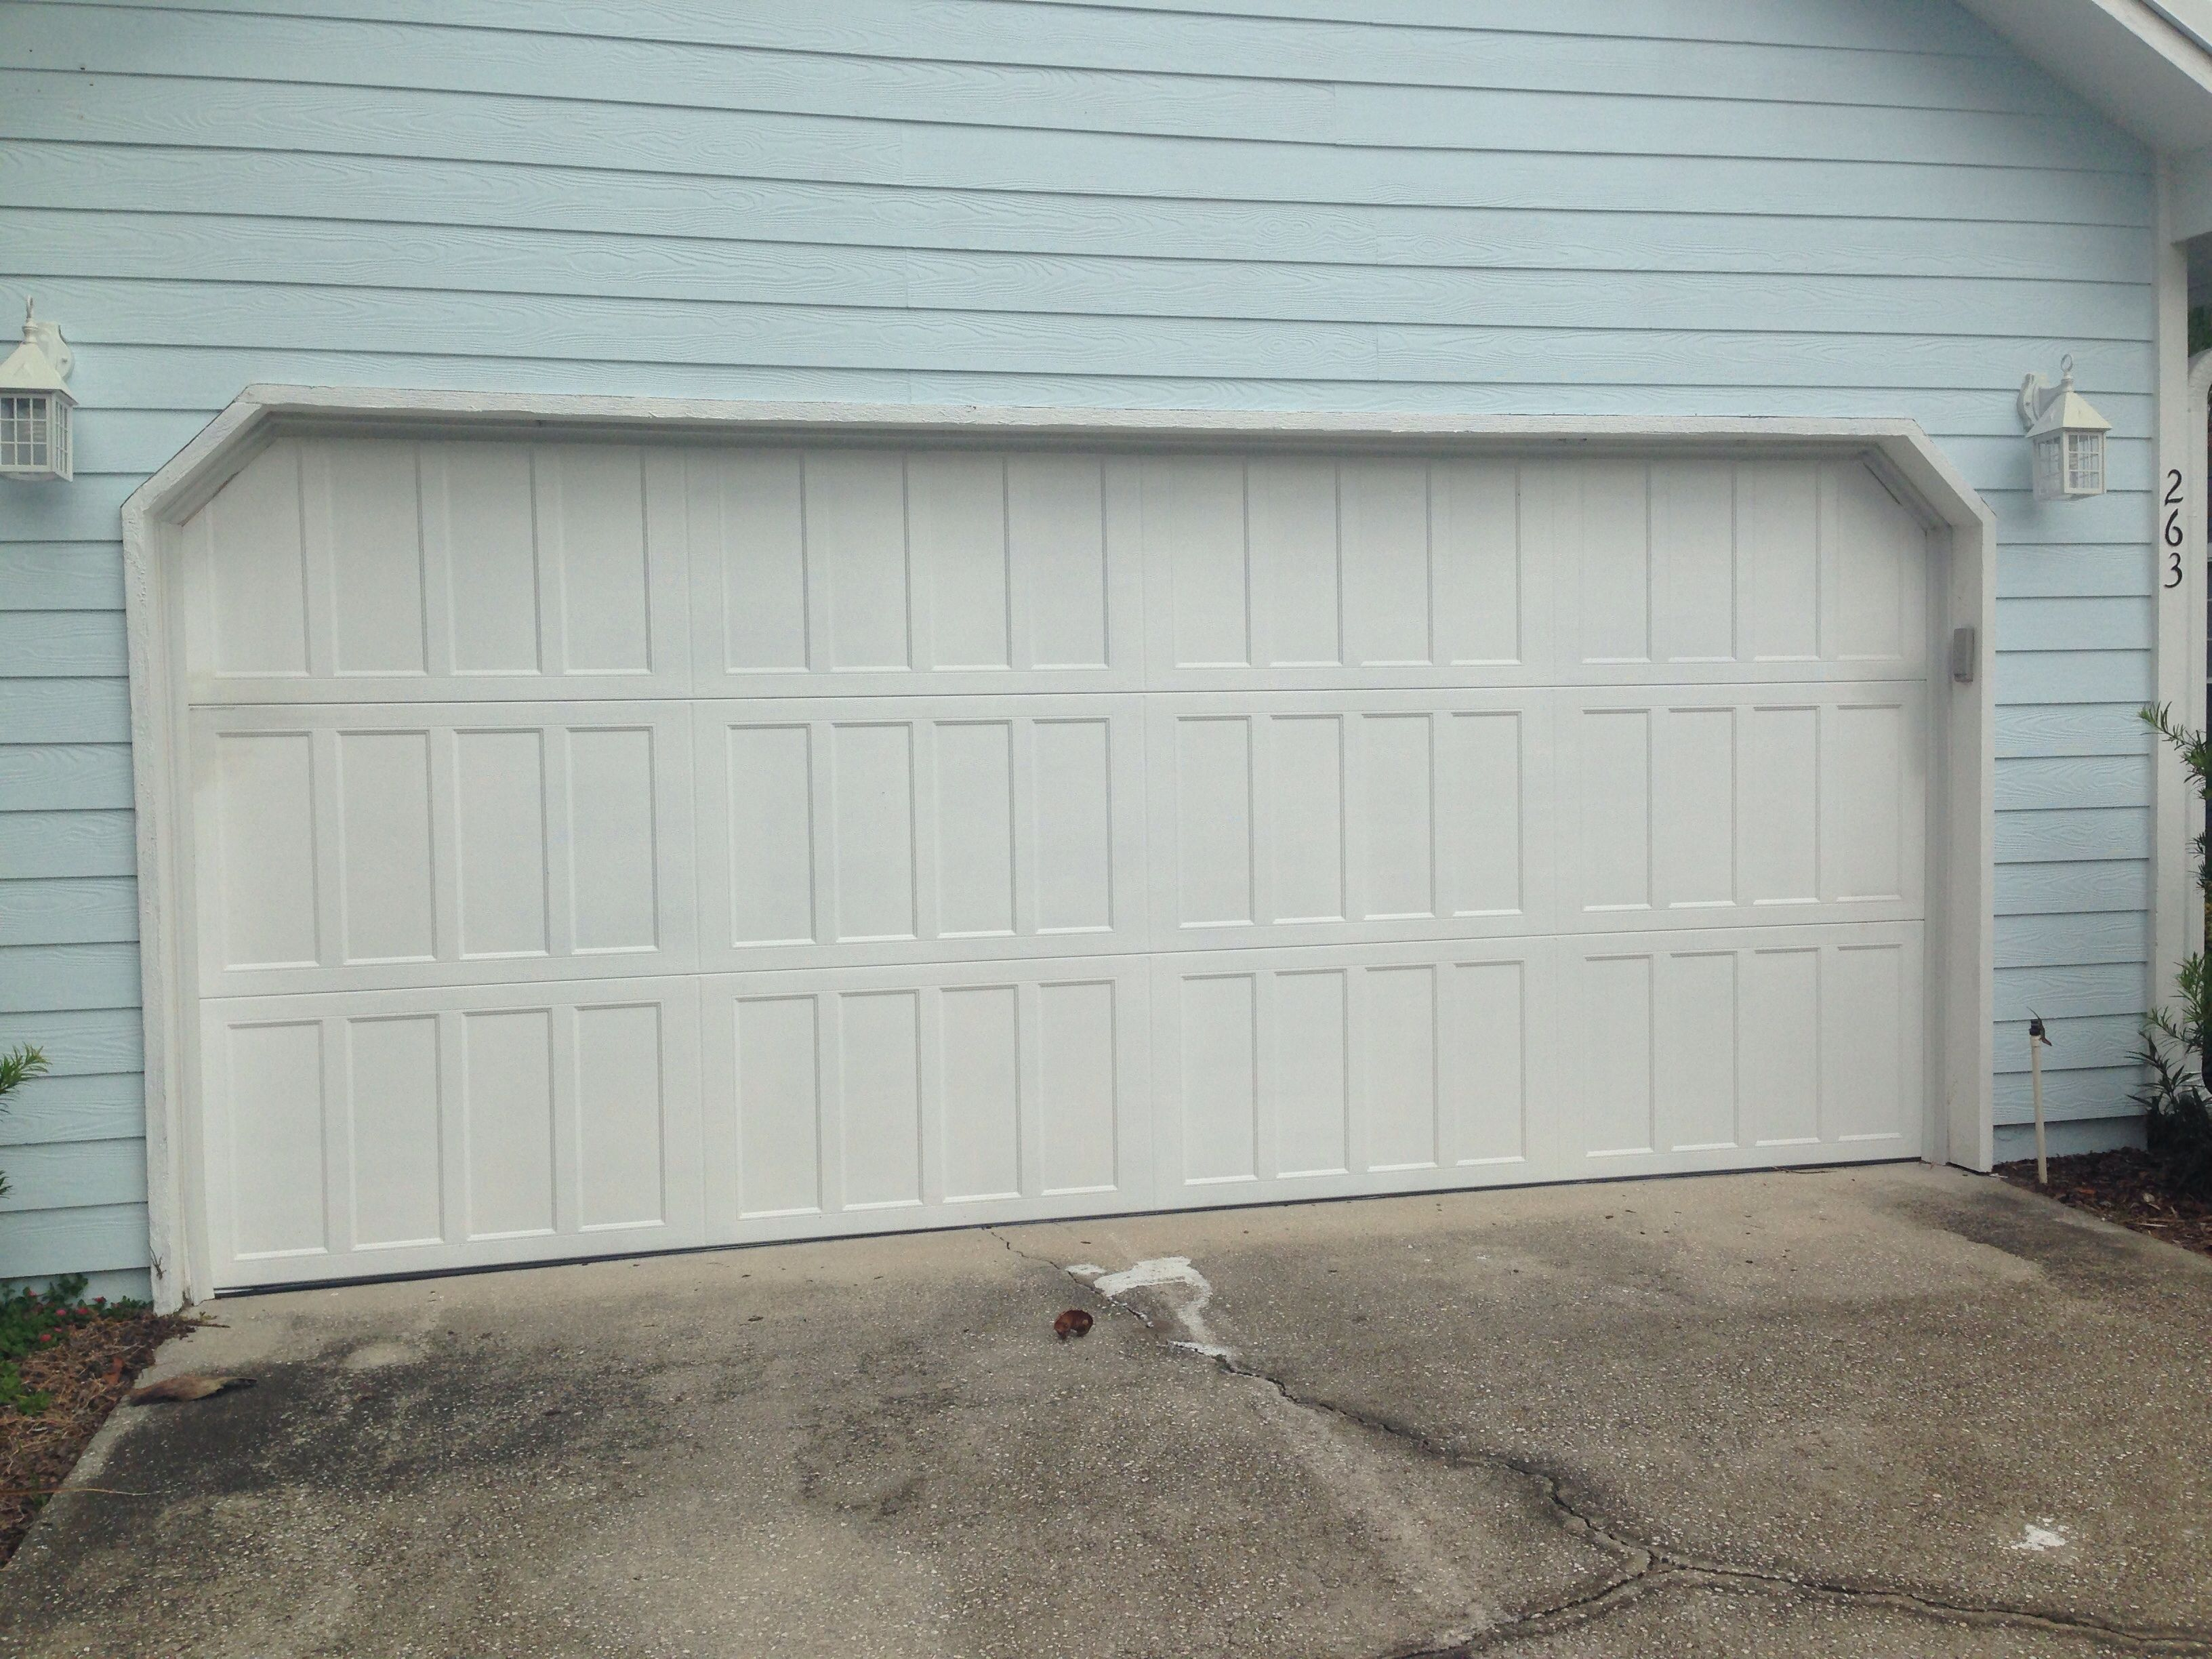 Amarr classica garage doors - Amarr Classica Northampton Closed Square In True White Garage Door Installed On A Home Remodel In